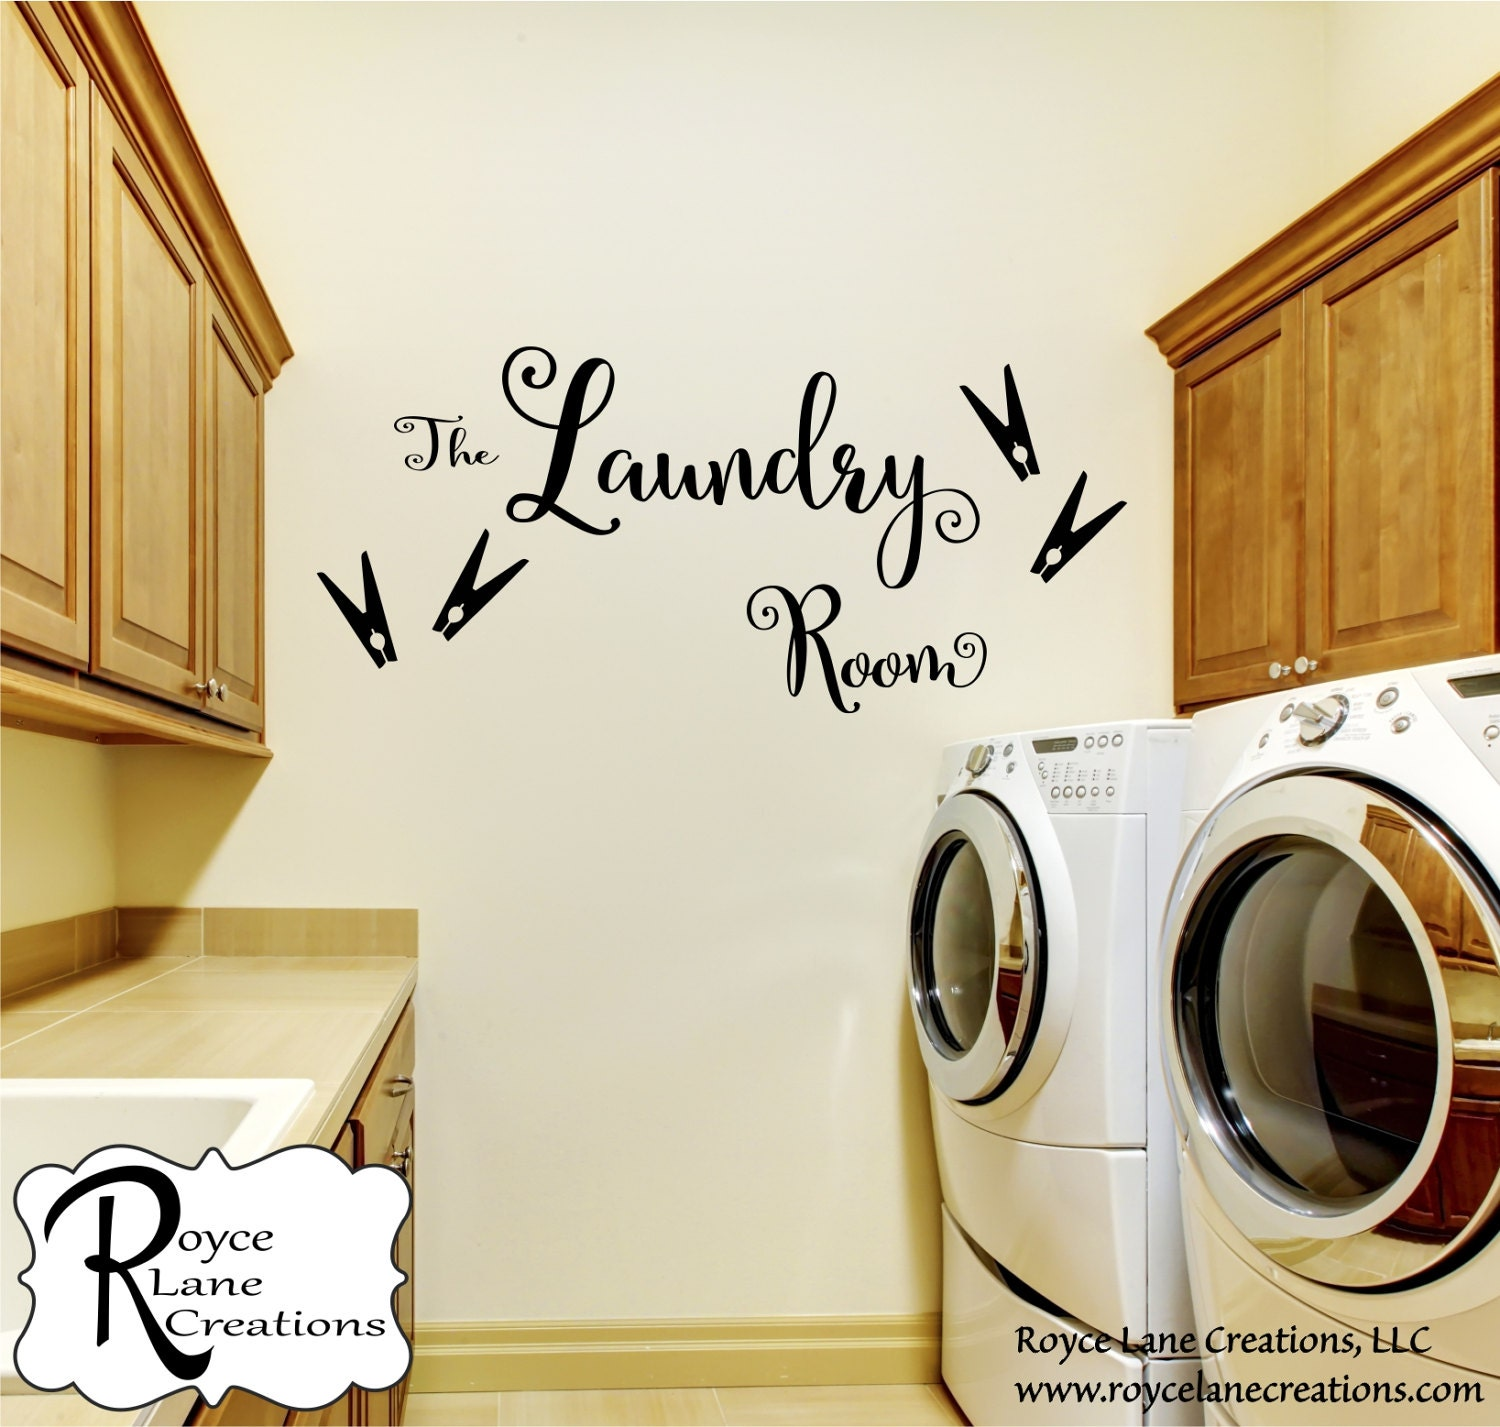 Laundry room decal the laundry room l6r laundry decal laundry laundry room decal the laundry room l6r laundry decal laundry room decor vinyl laundry decal vinyl laundry sign laundry wall decal amipublicfo Images